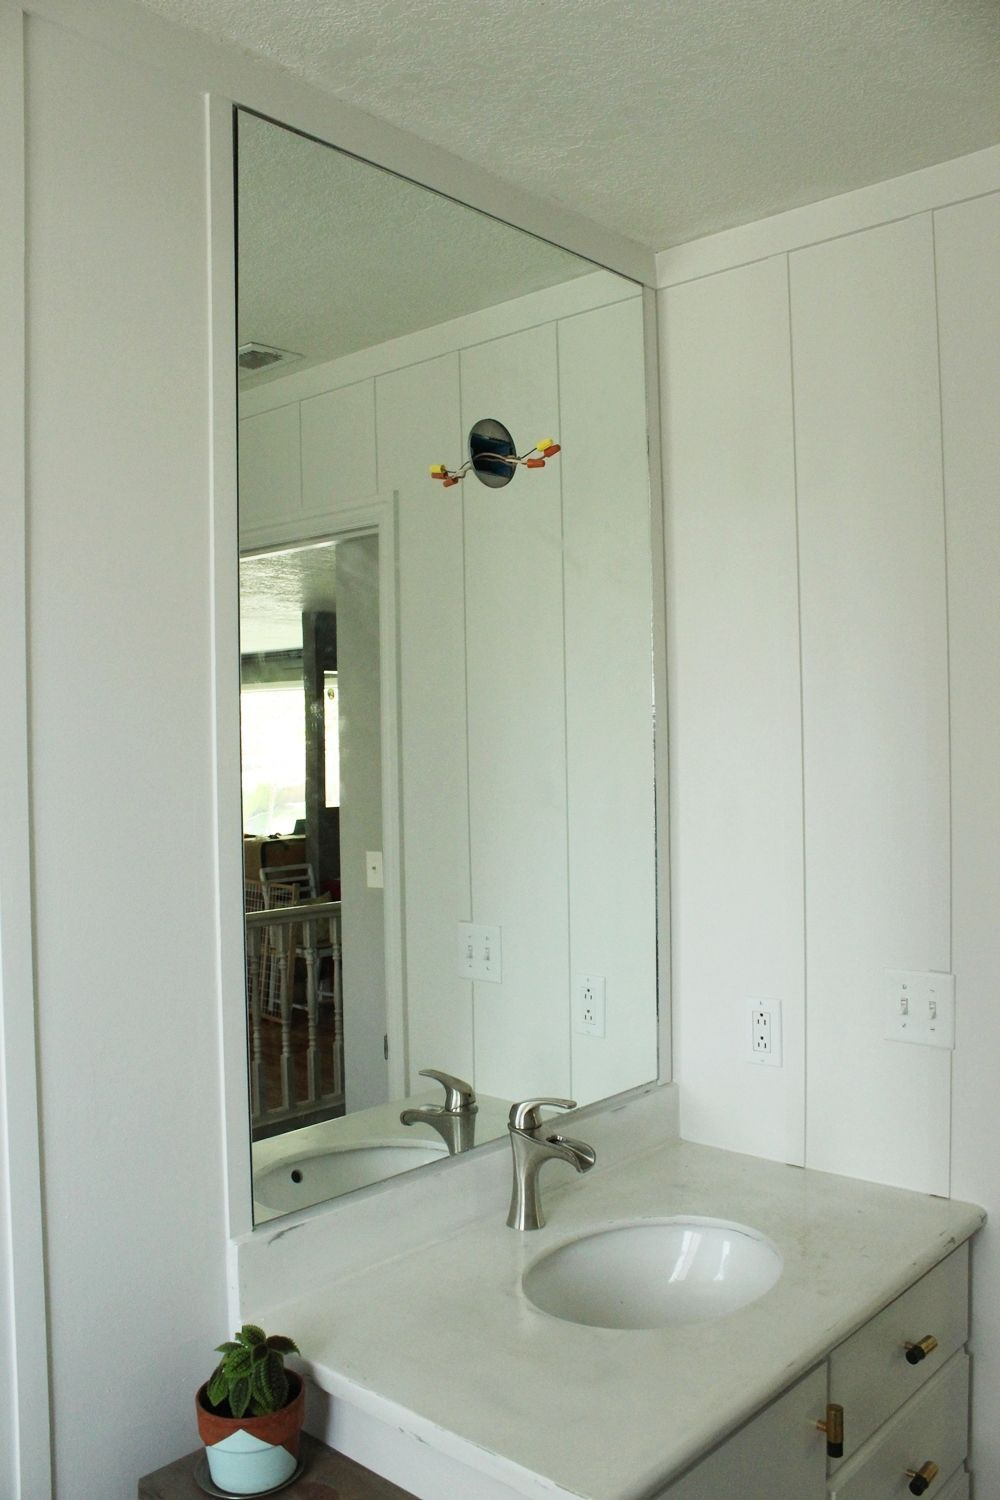 Delicieux How To Professionally Install A Bathroom Mirror